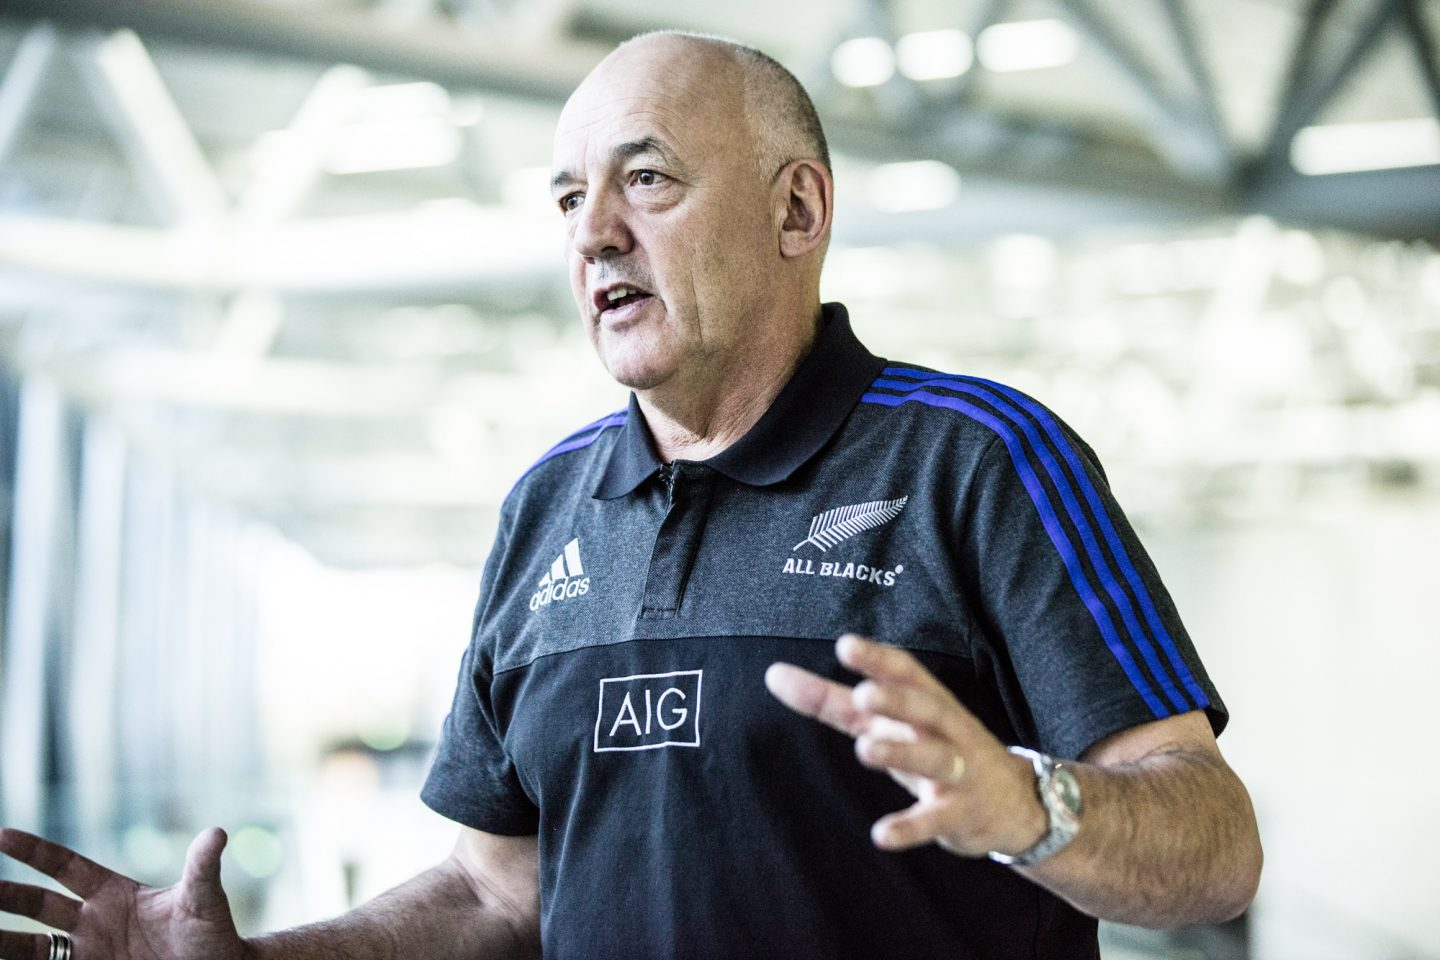 All Blacks Mental Coach Gilbert Enoka talking mental strenght and team spirit